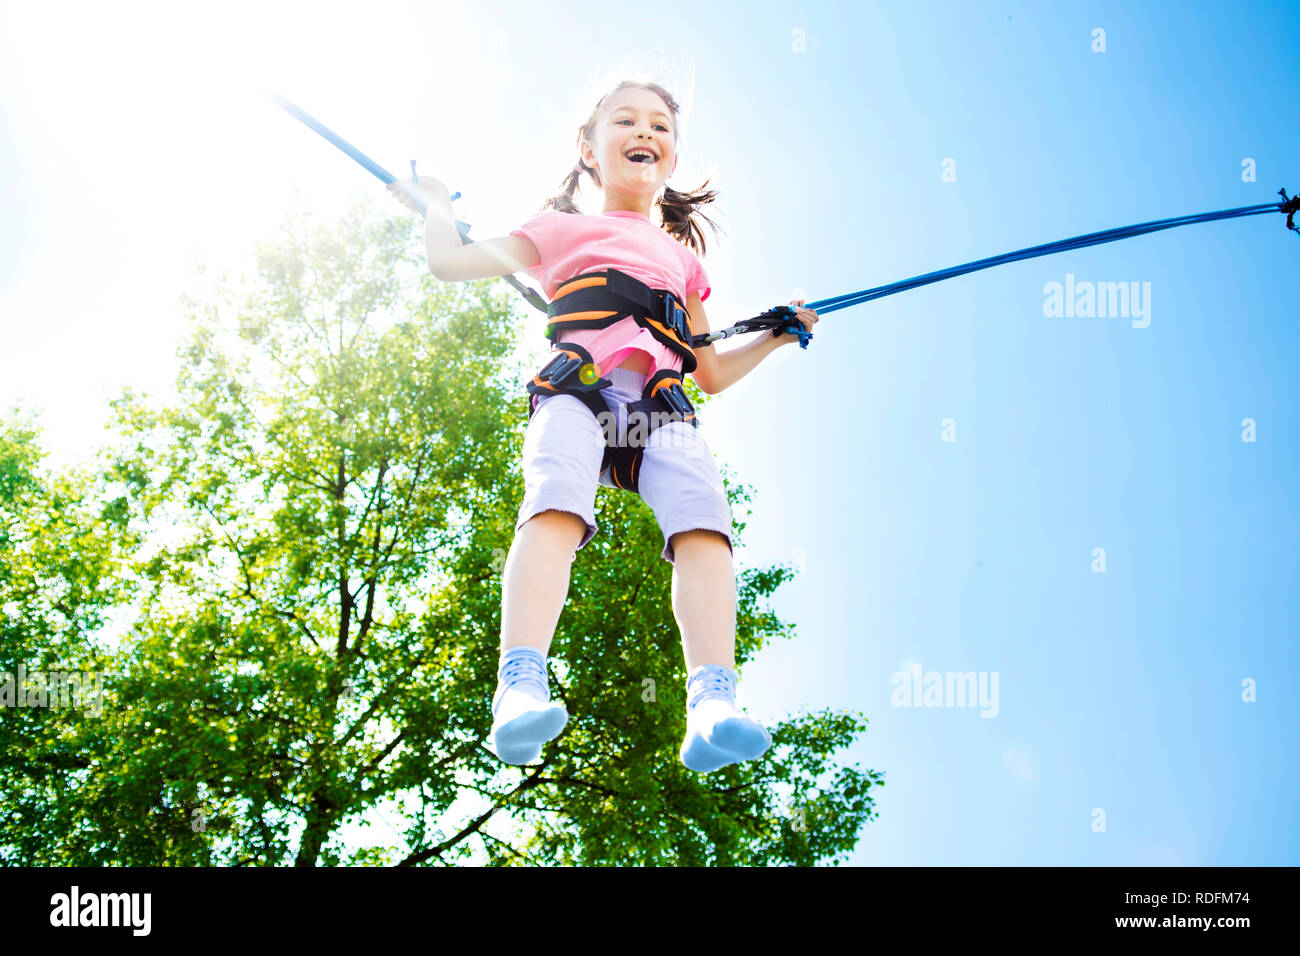 Little girl bouncing high in the air using a bungee trampoline. - Stock Image